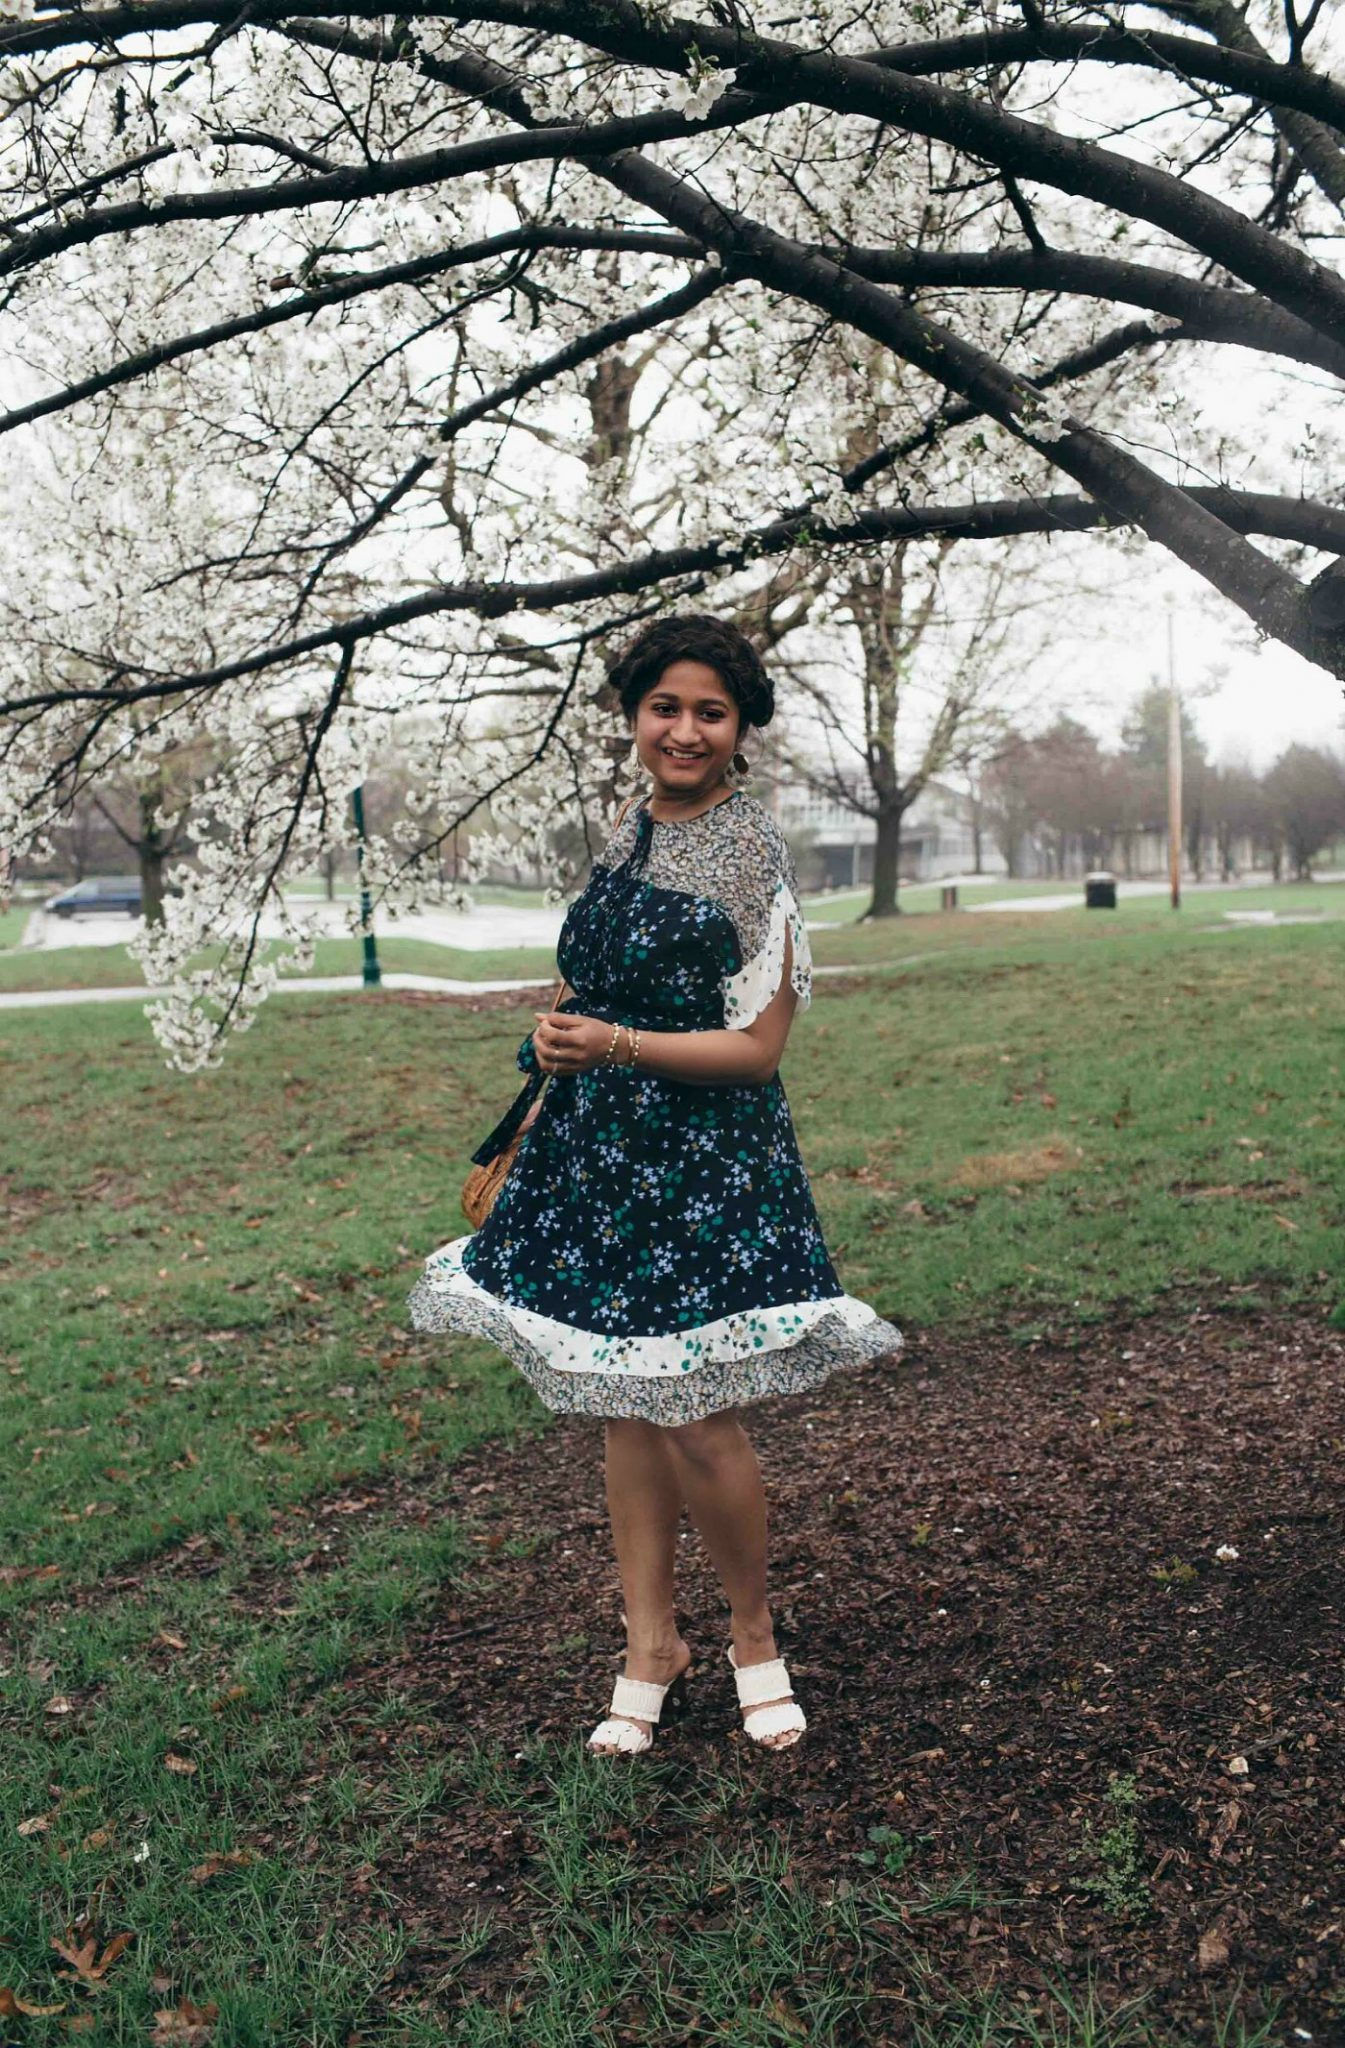 Lifestyle Blog Dreaming Loud wearing Ann Taylor Mixed Floral Flounce Dress for Cherry Blossoms festival 3